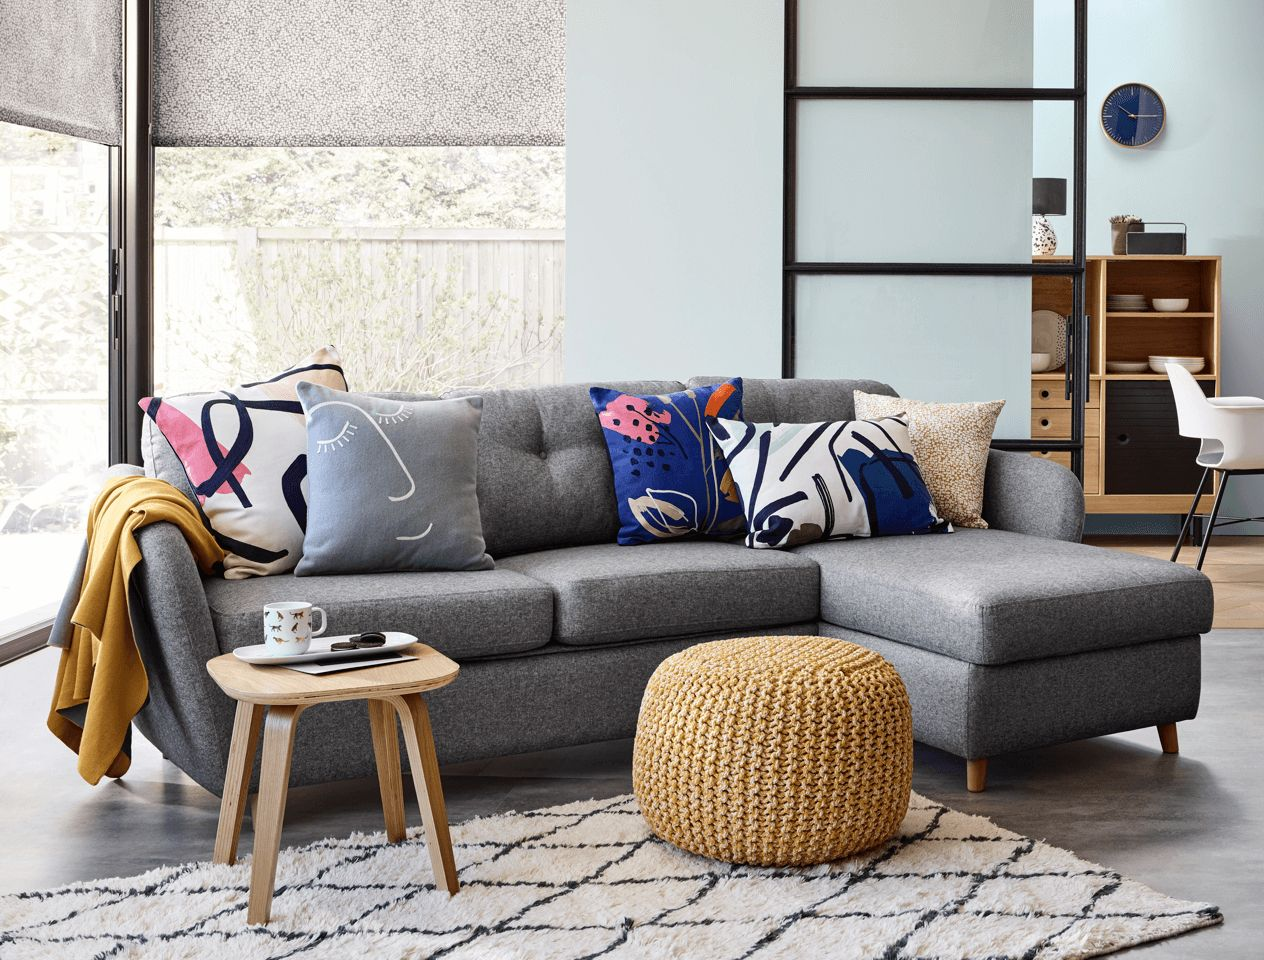 Light grey sofa with patterned cushions